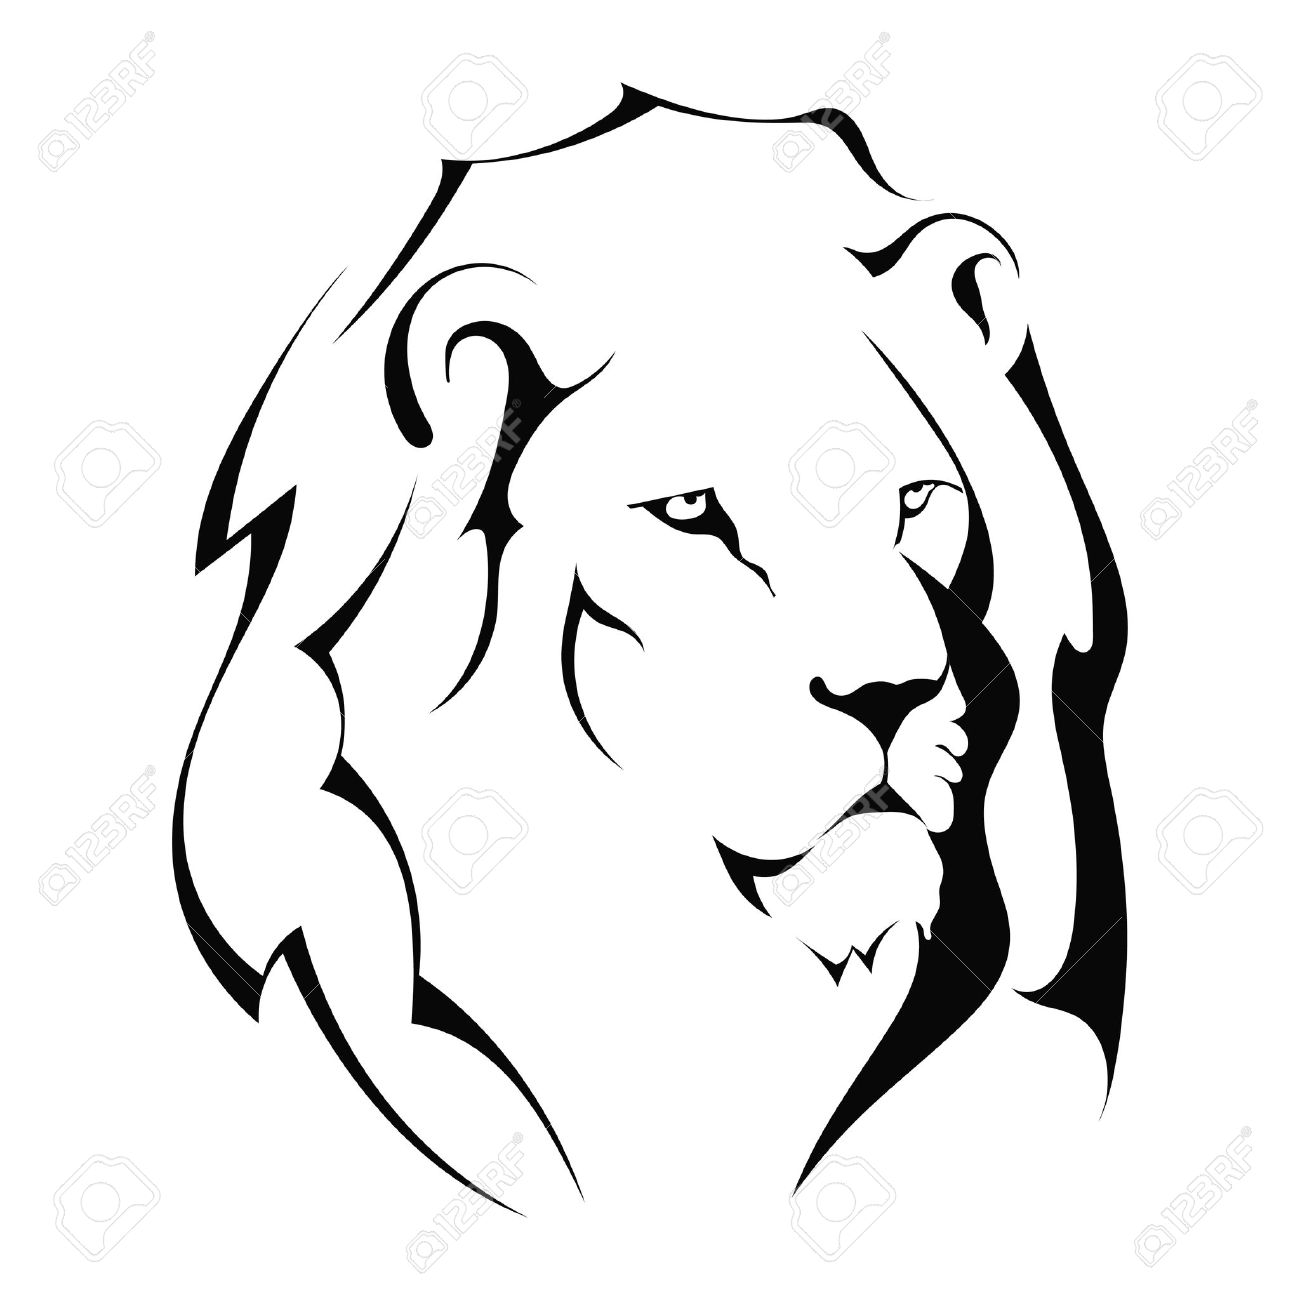 Lion clipart loin. Collection of free download